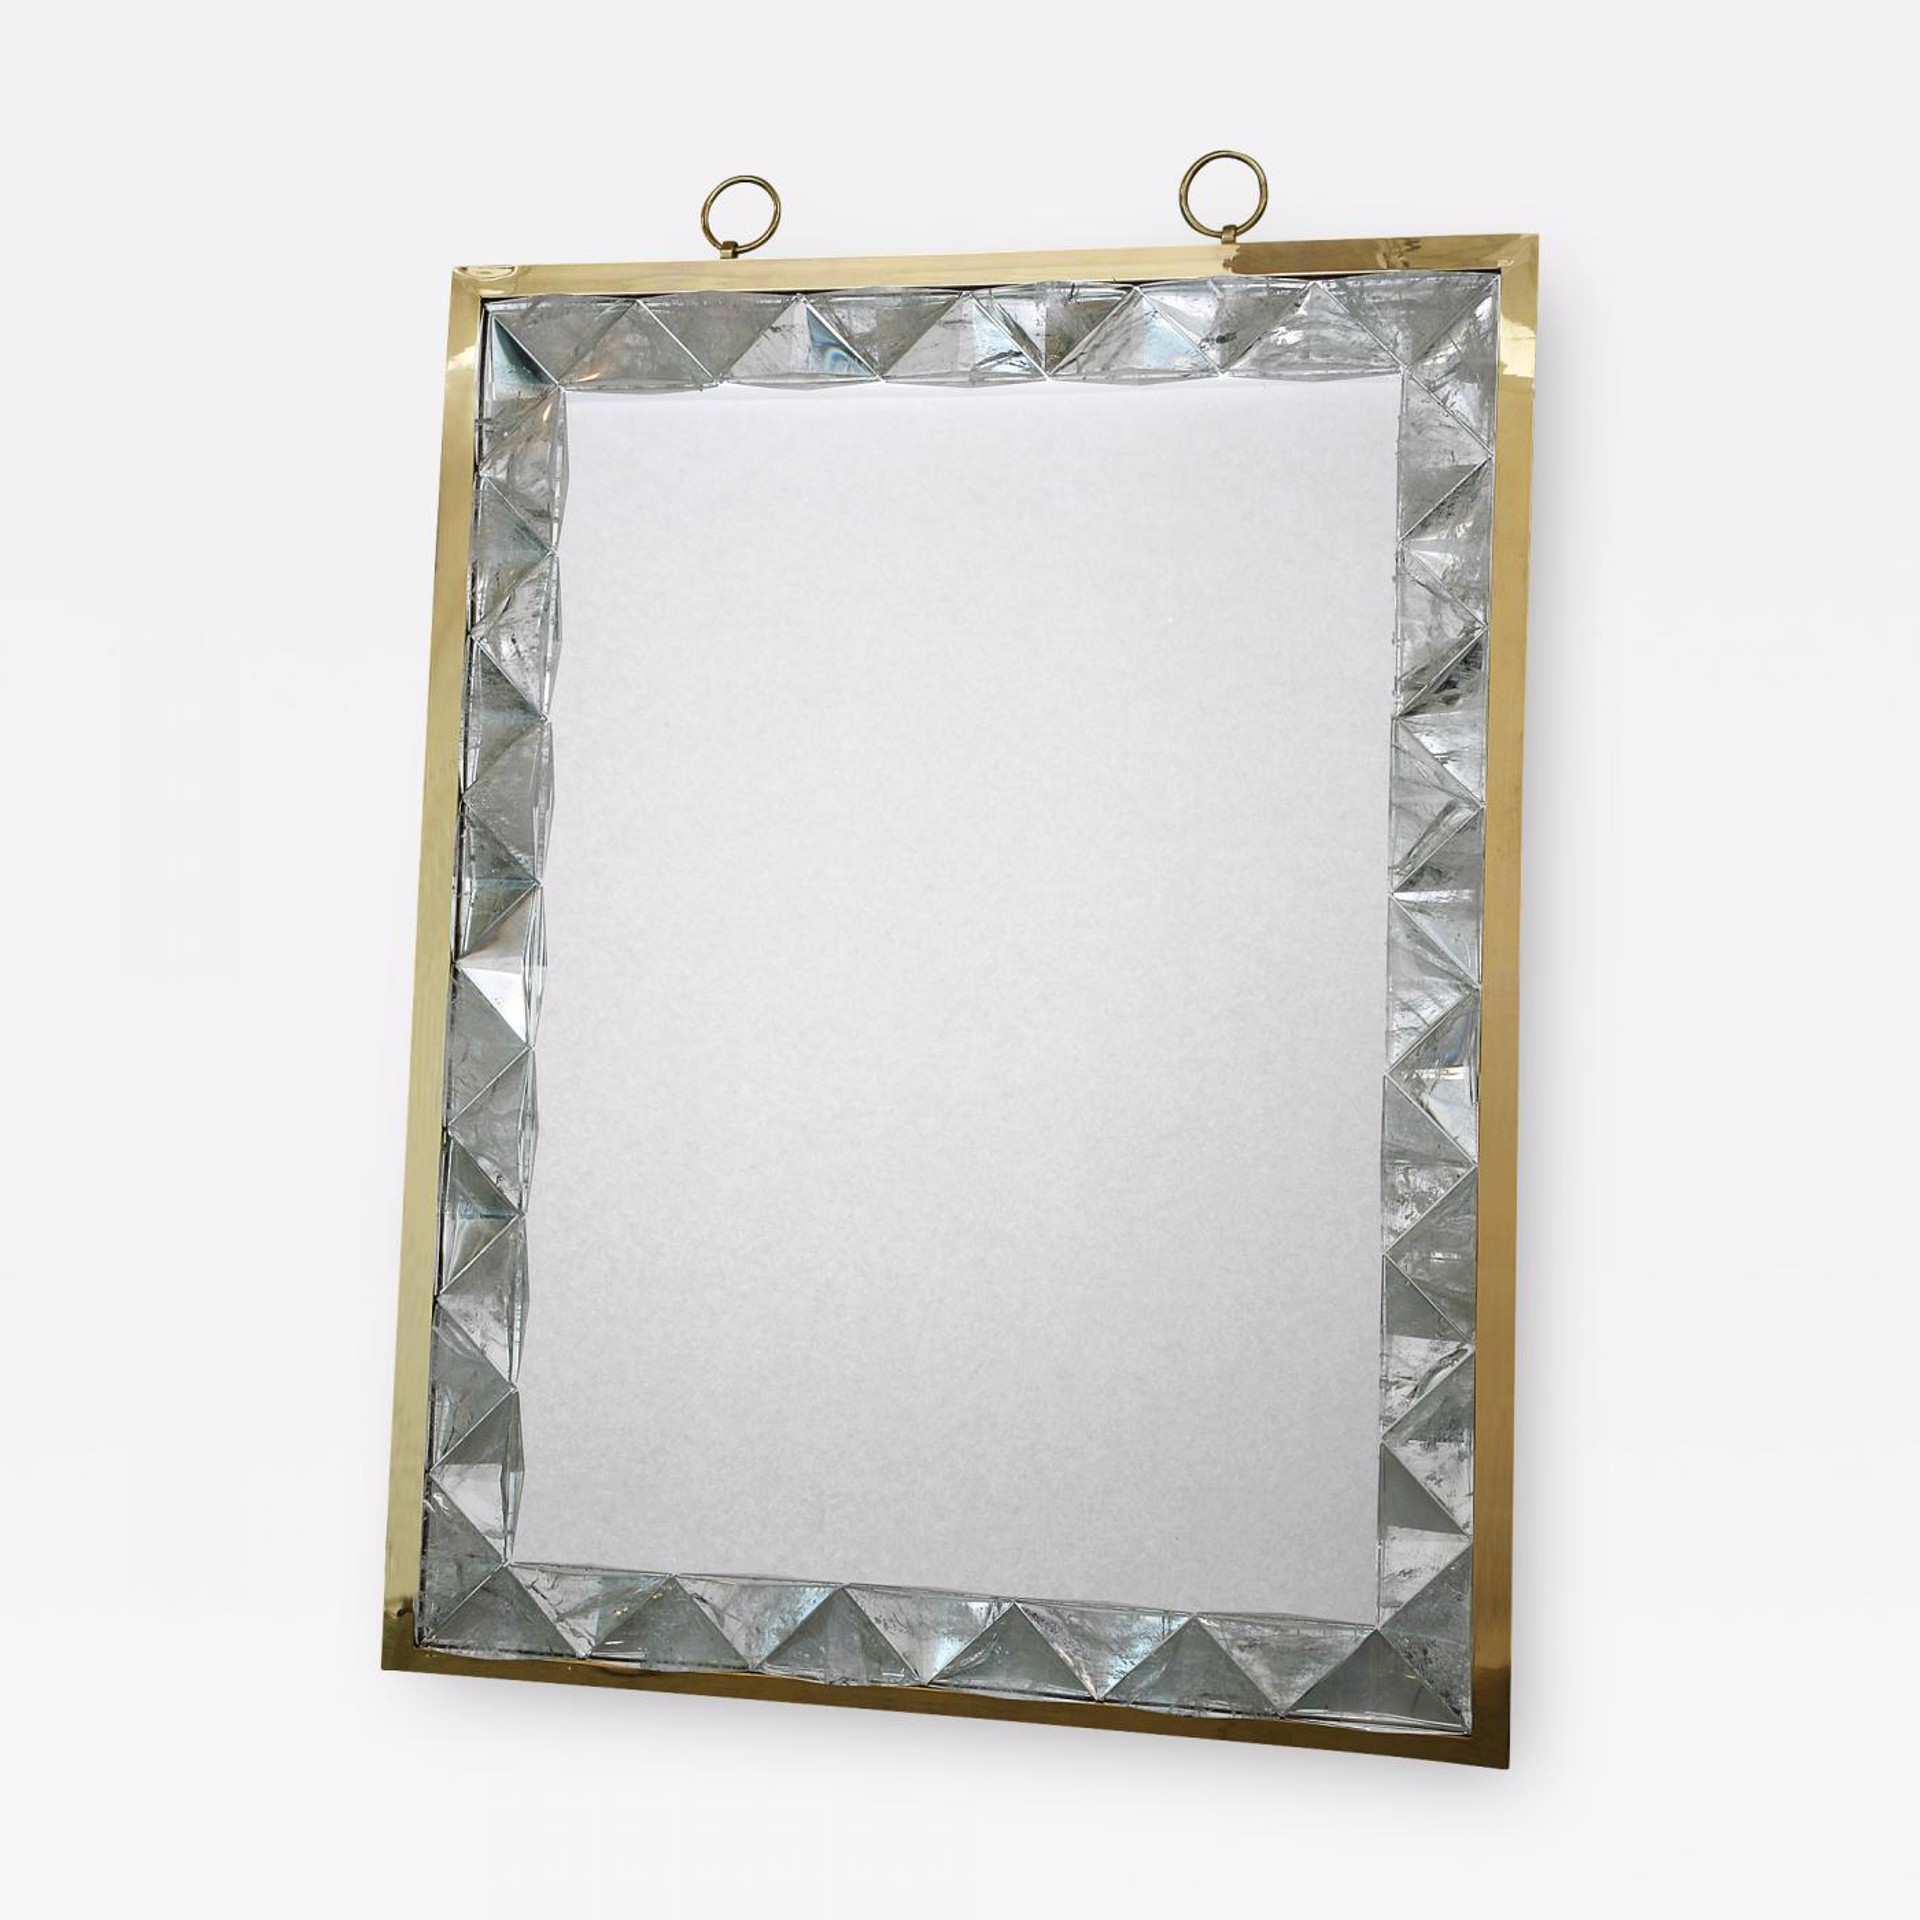 Mirror framed in rock crystal  by Andre Hayat